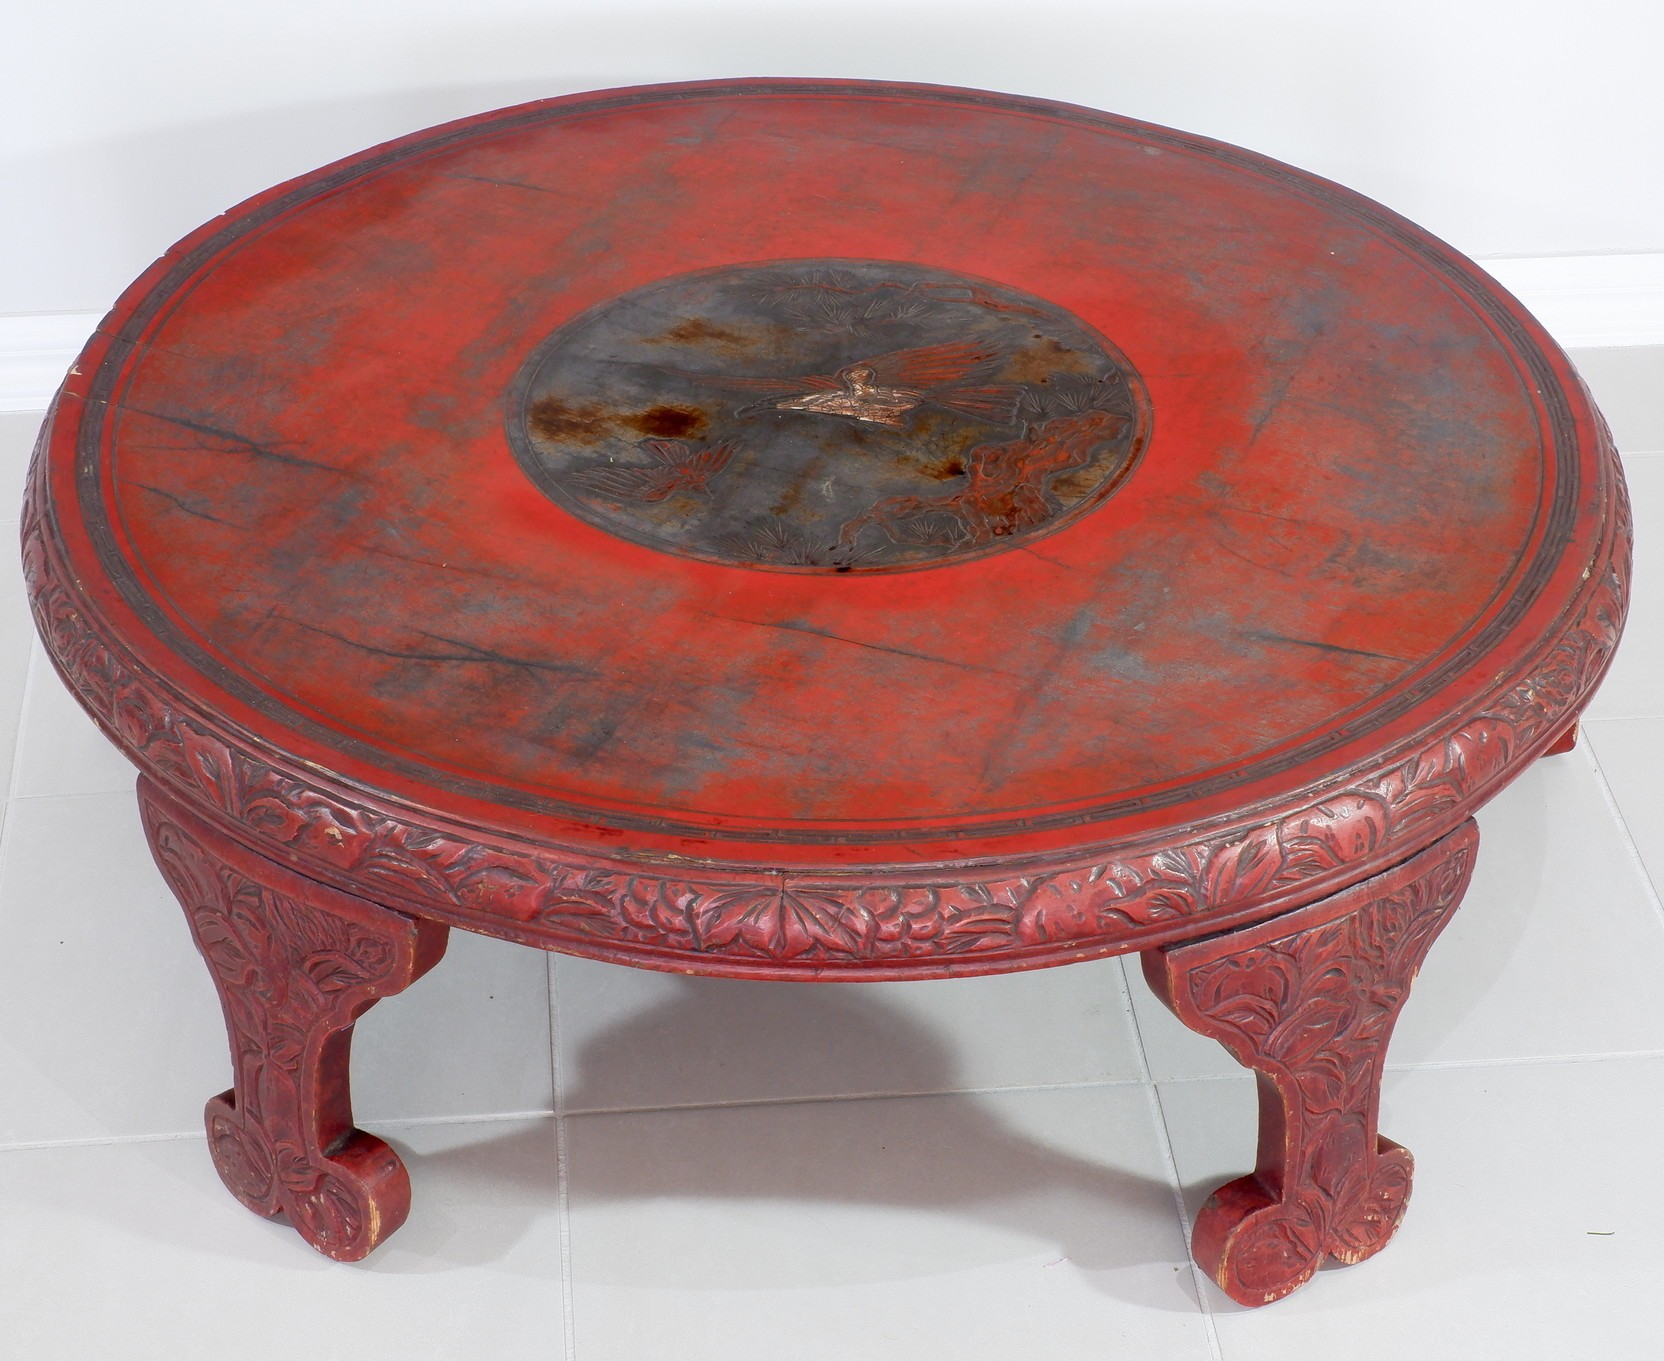 'Antique Korean Carved Wood and Lacquer Decorated Low Table'